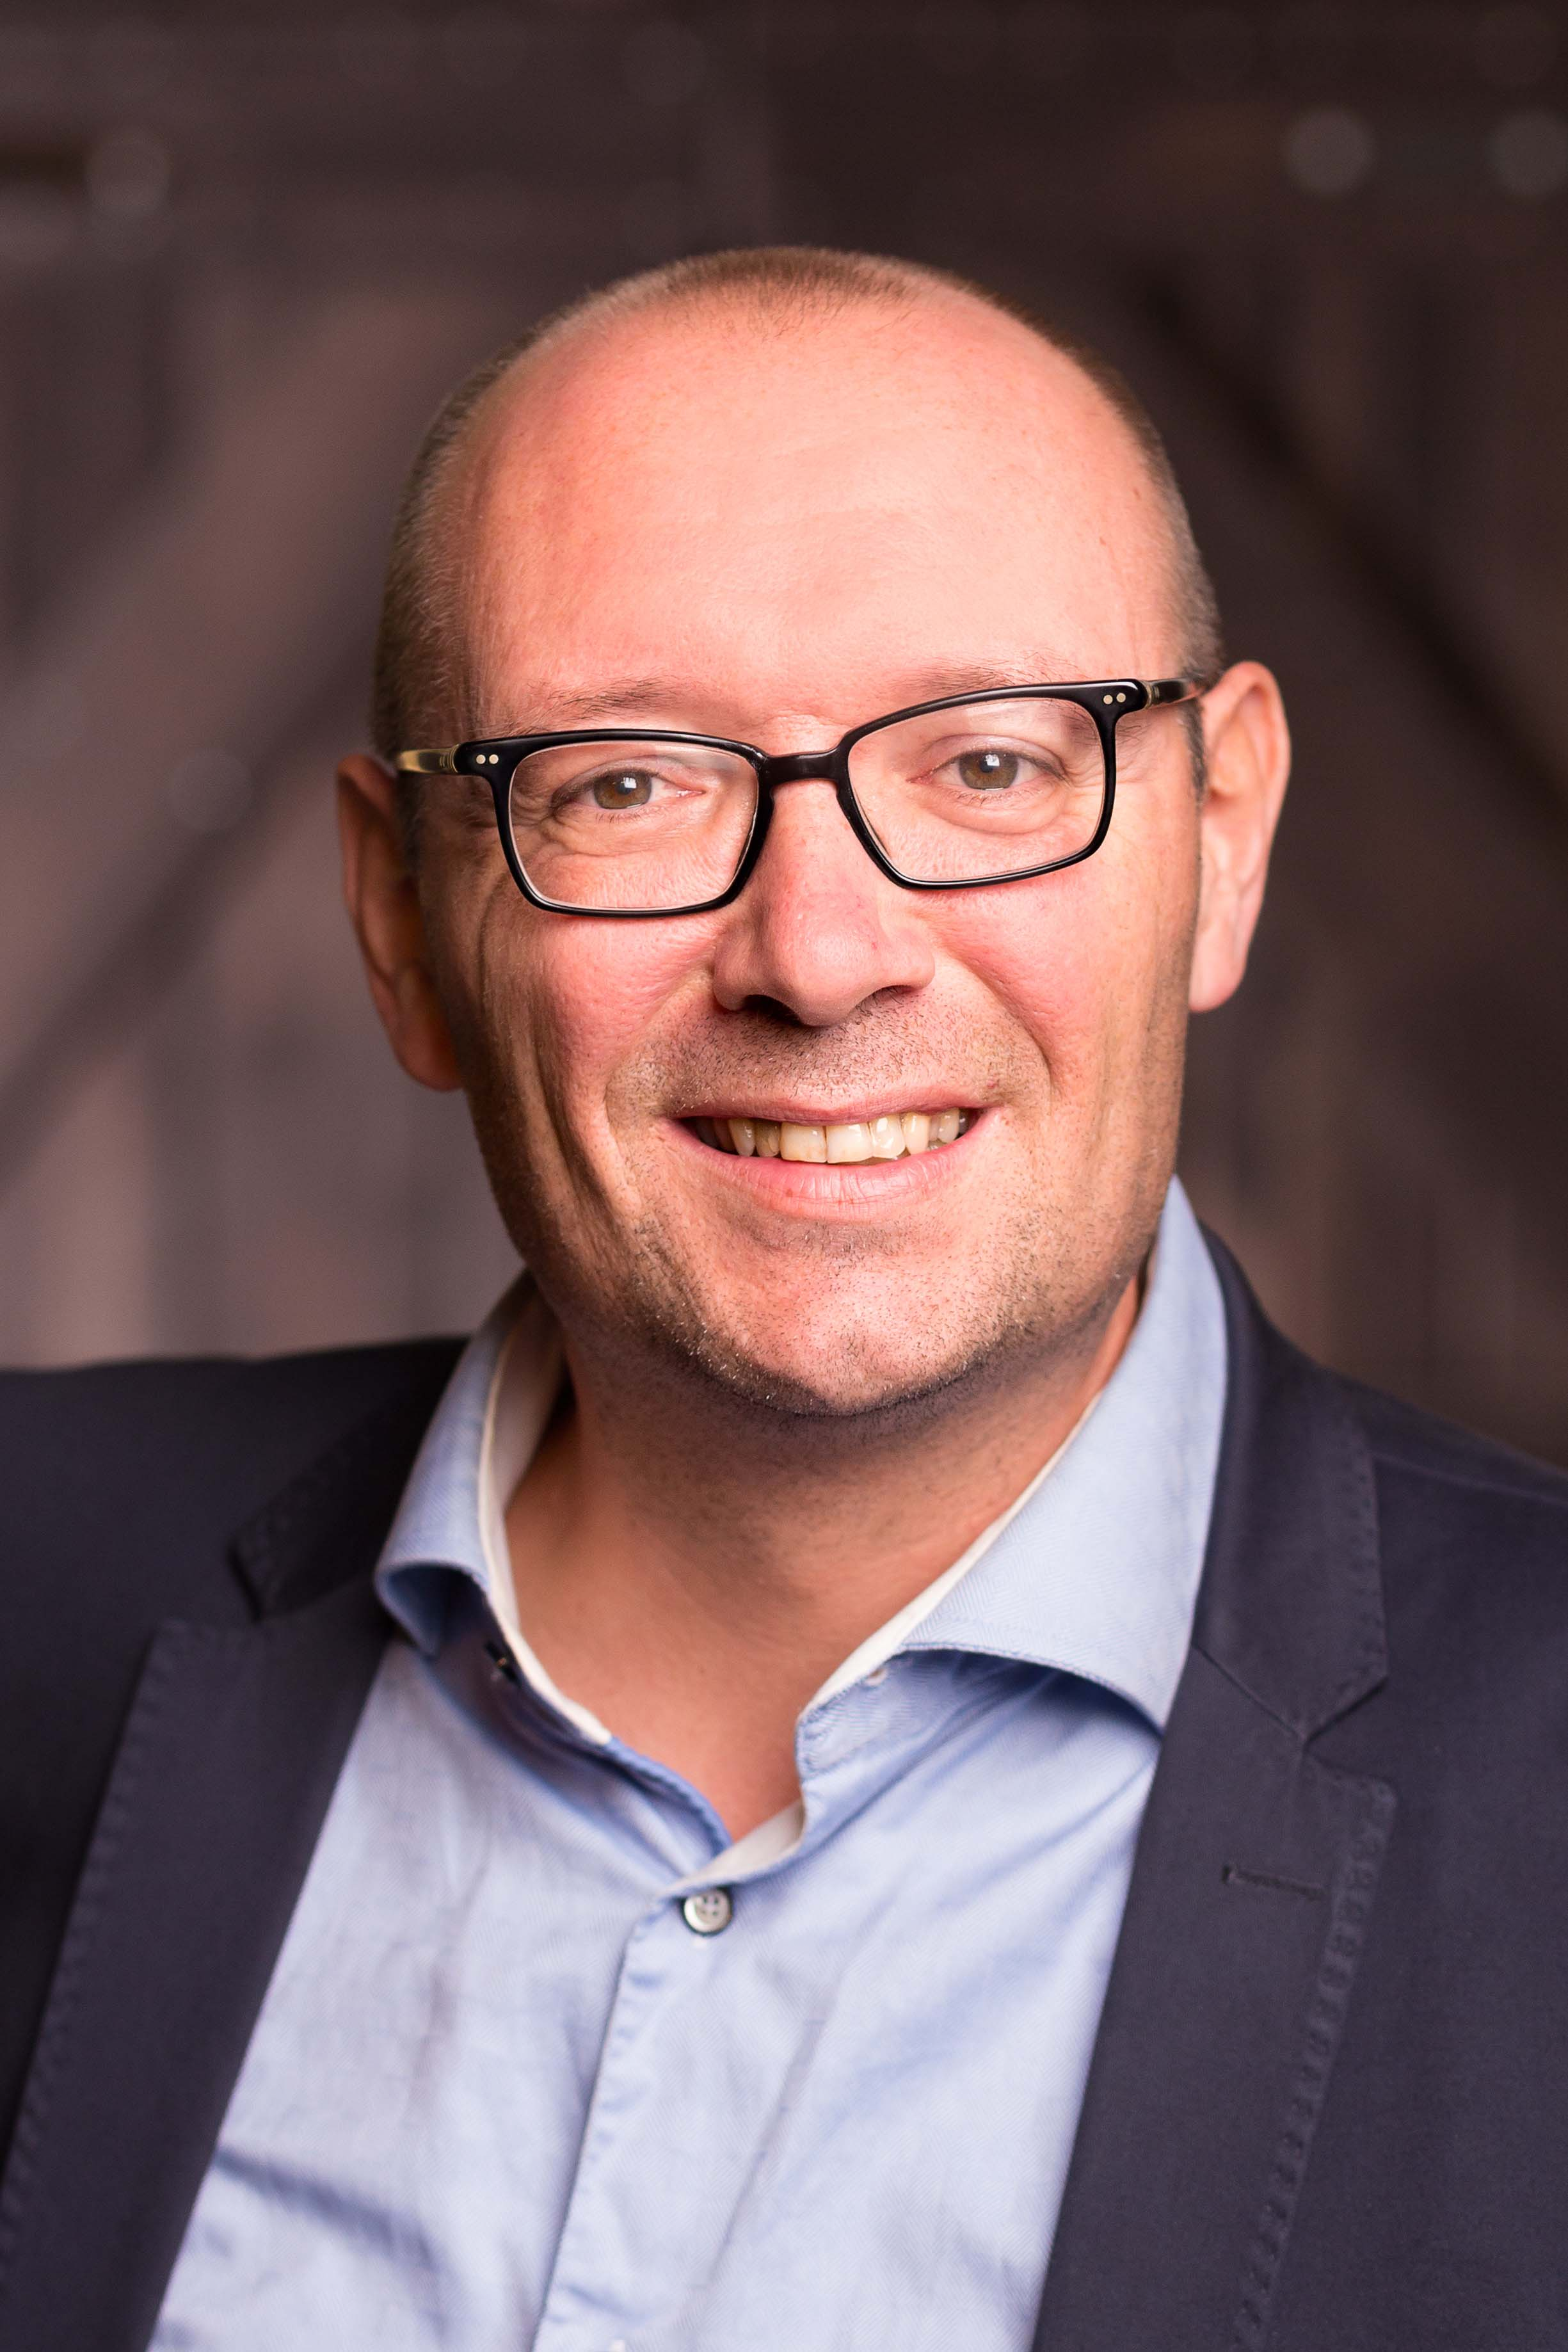 Schot marketing & communicatie - Arjan Holleman, 06 512 26 030